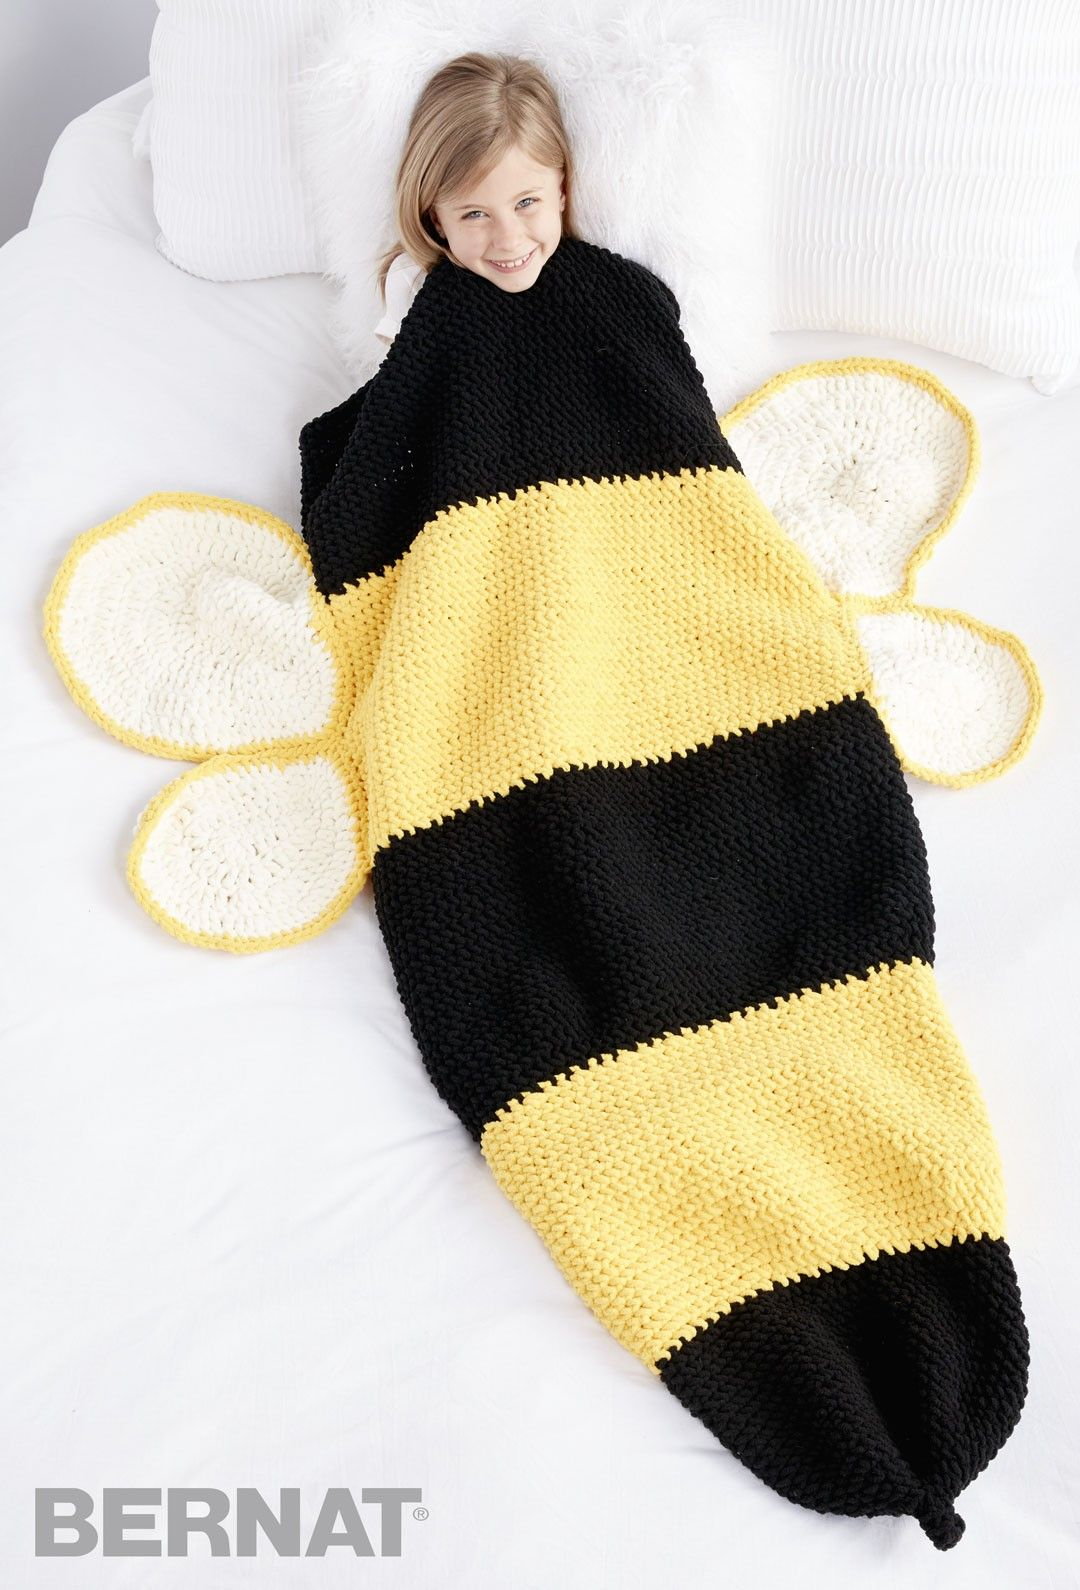 Cottage snuggle sack and hat crochet baby baby cocoon and sacks - Bumble Bee Crochet Snuggle Sack Patterns Yarnspirations